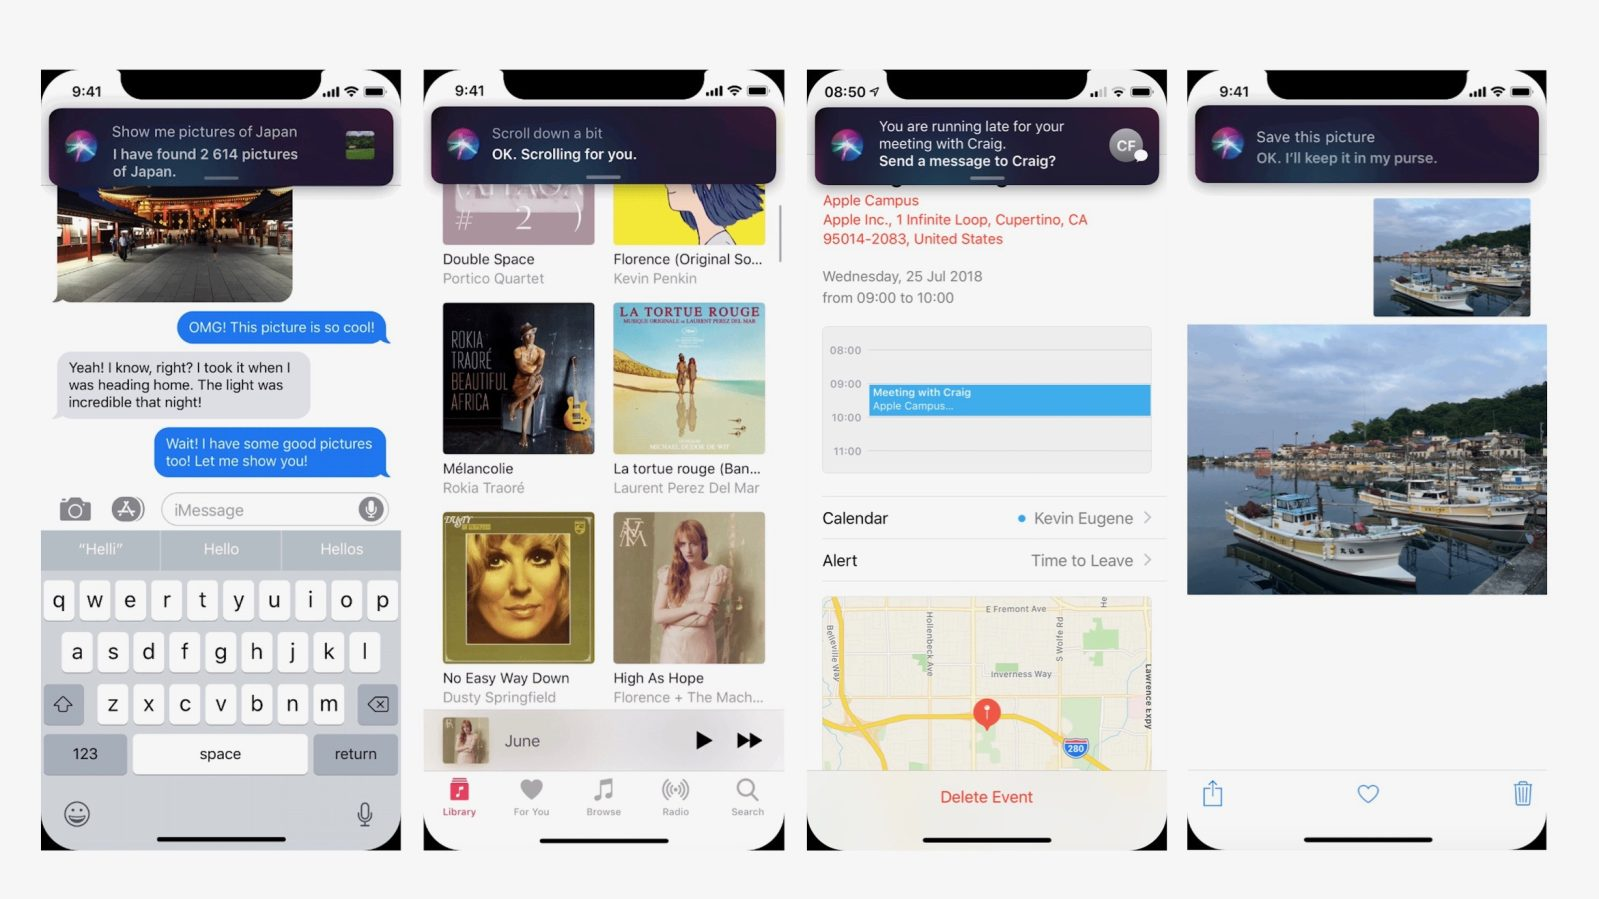 Beautiful Siri Concept Imagines 'parallel Help' Ditching Full-screen Takeover, Reinvents iOS Multitasking